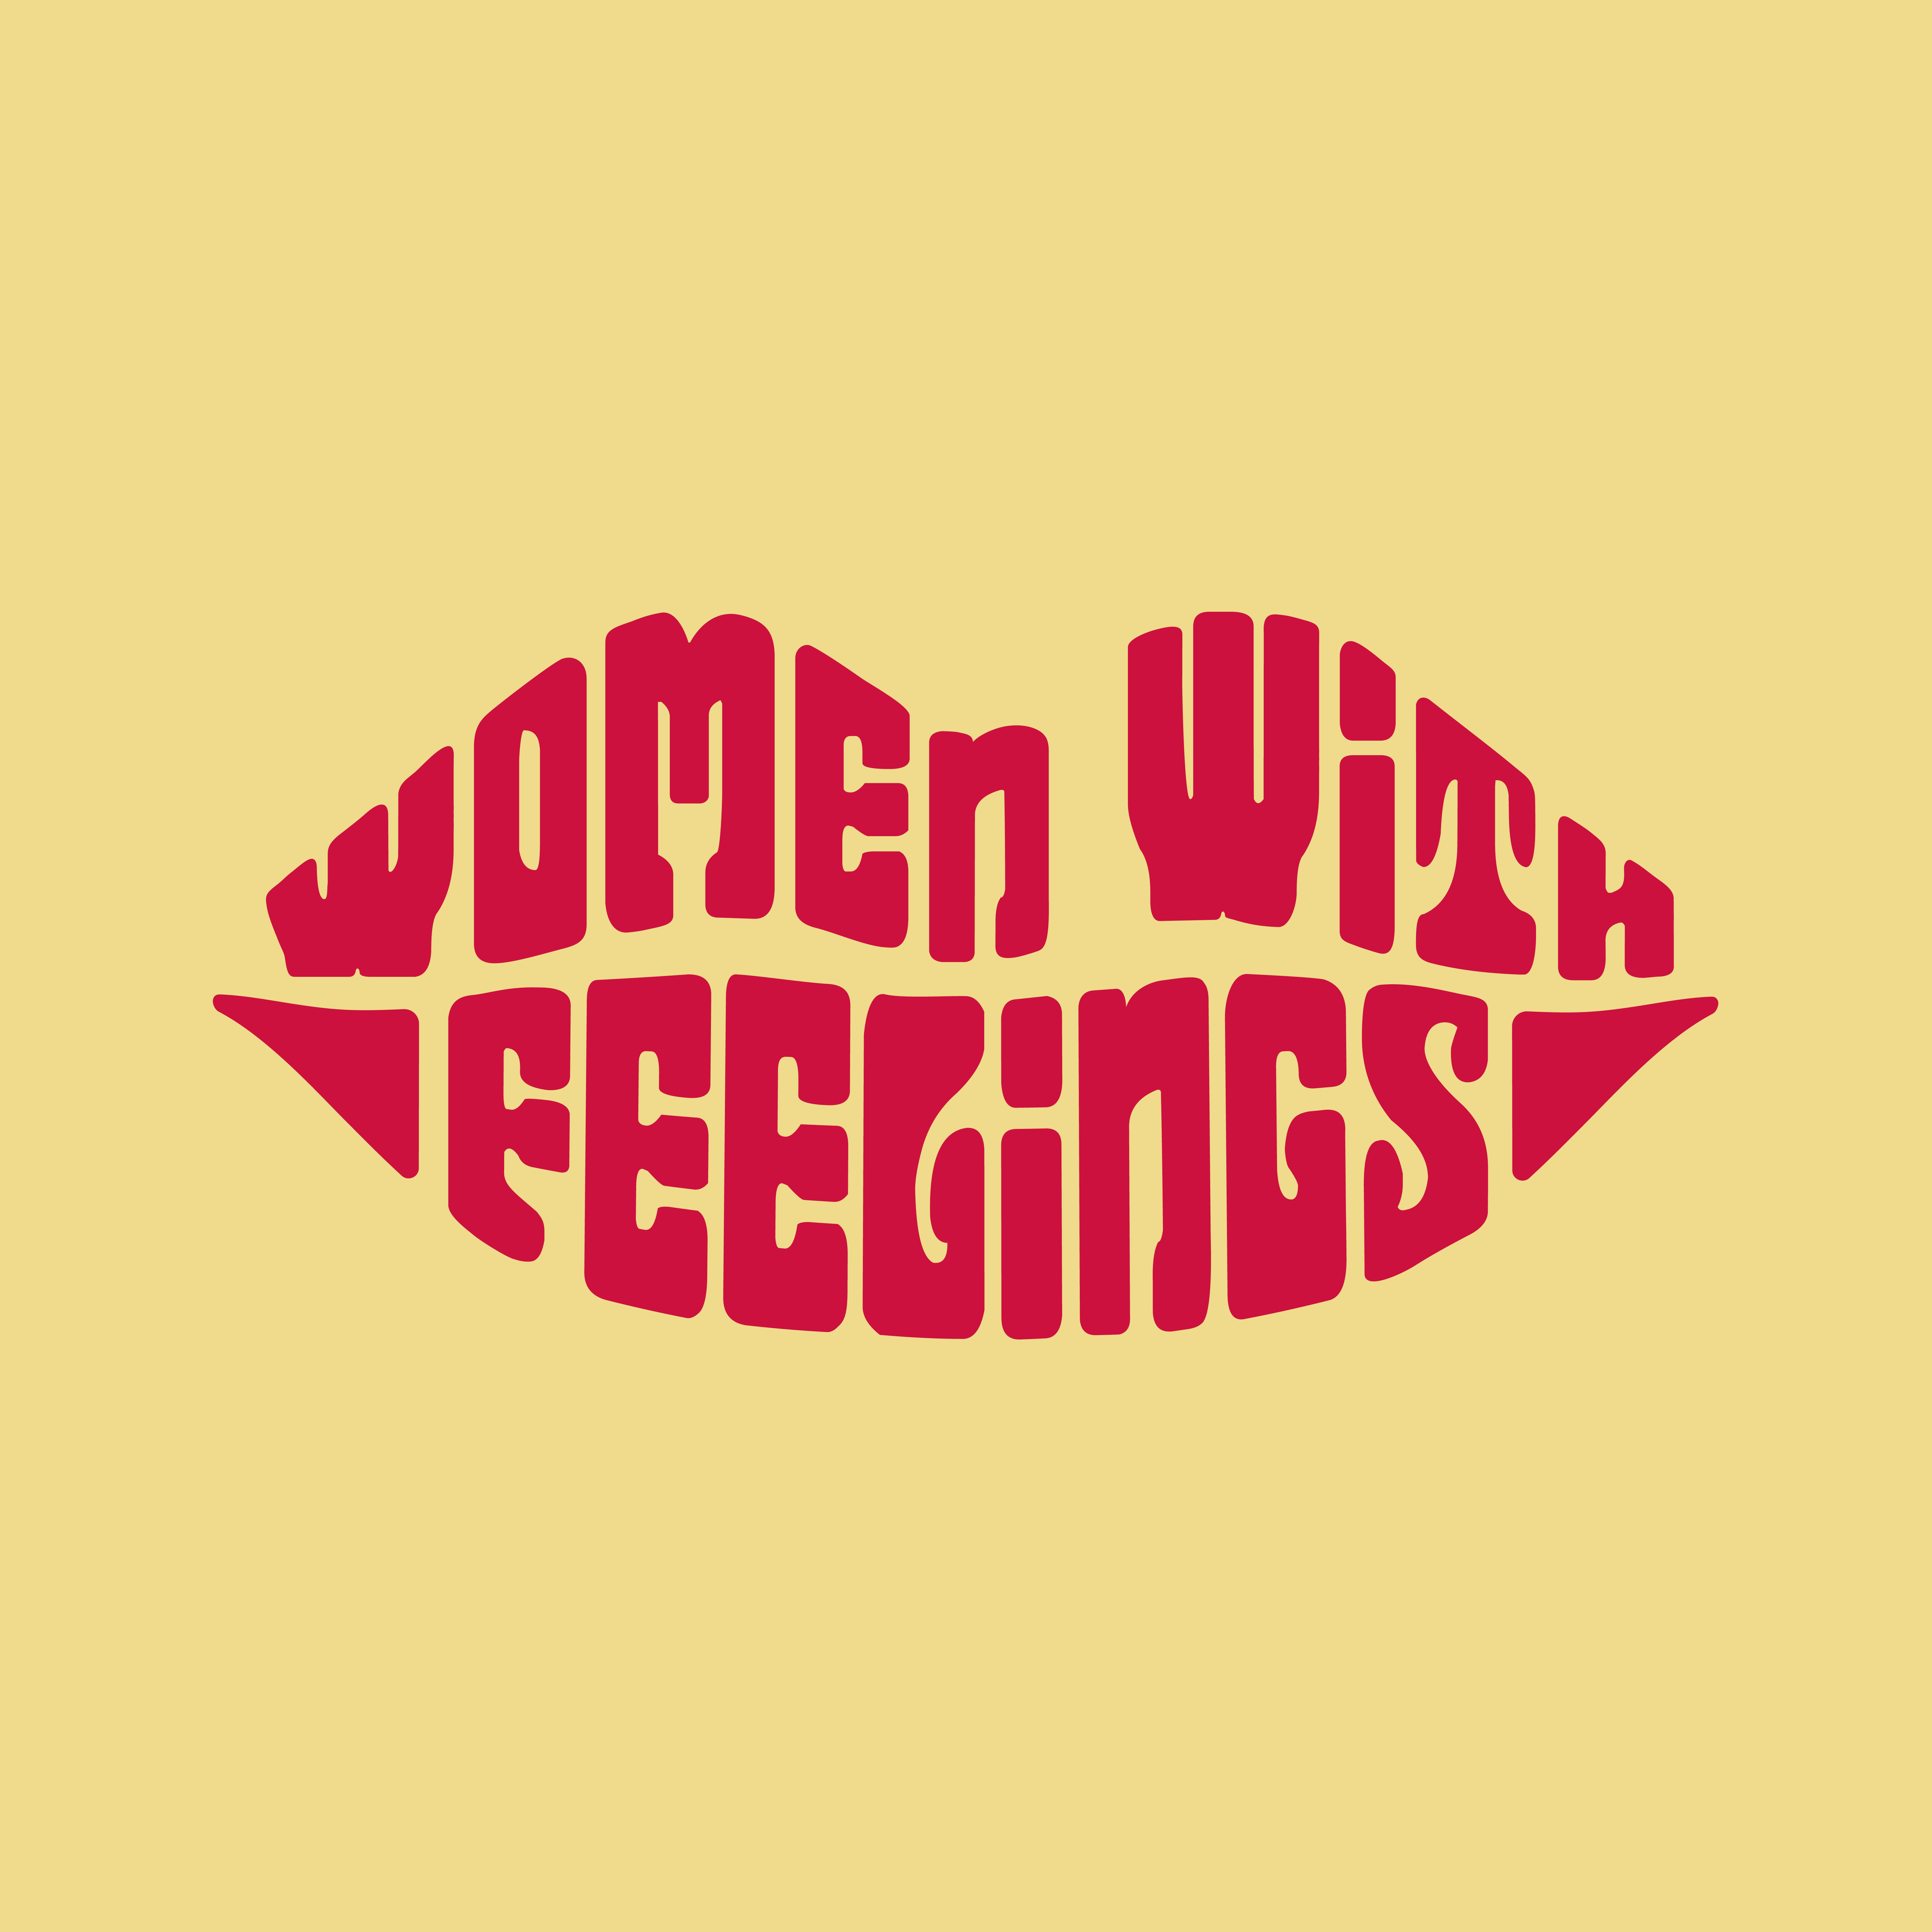 Women with feelings playlist cover